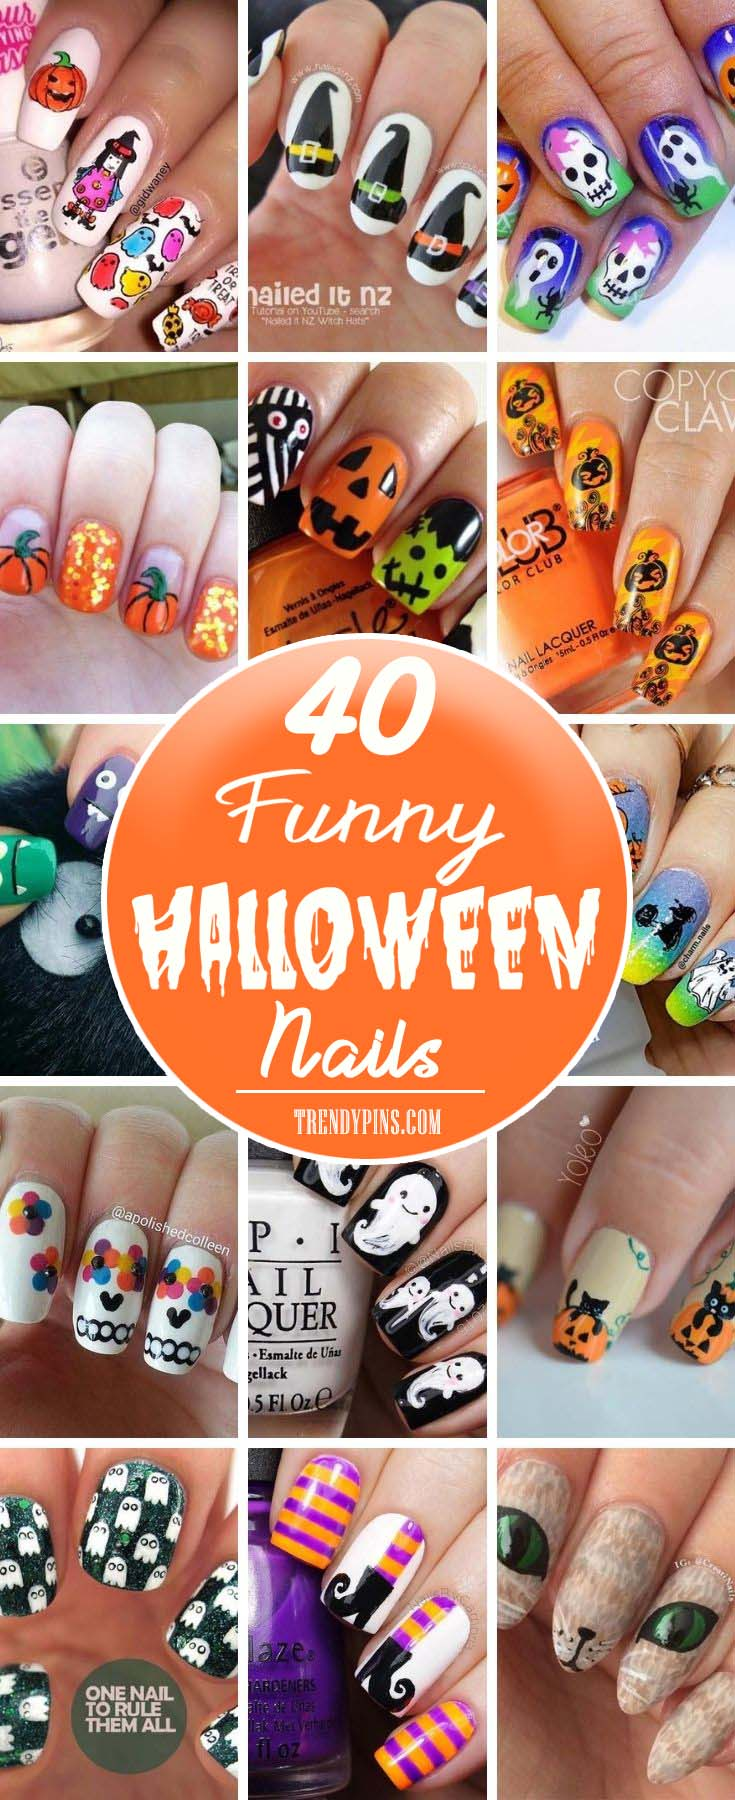 I've got a wonderful collection of 40 funny nail art designs that you can do for yourself. You're going to love these nail art designs and I hope you will share your favorite and how well it matched your Halloween costume! #Halloween #nails #trendypinsI've got a wonderful collection of 40 funny nail art designs that you can do for yourself. You're going to love these nail art designs and I hope you will share your favorite and how well it matched your Halloween costume! #Halloween #nails #trendypins